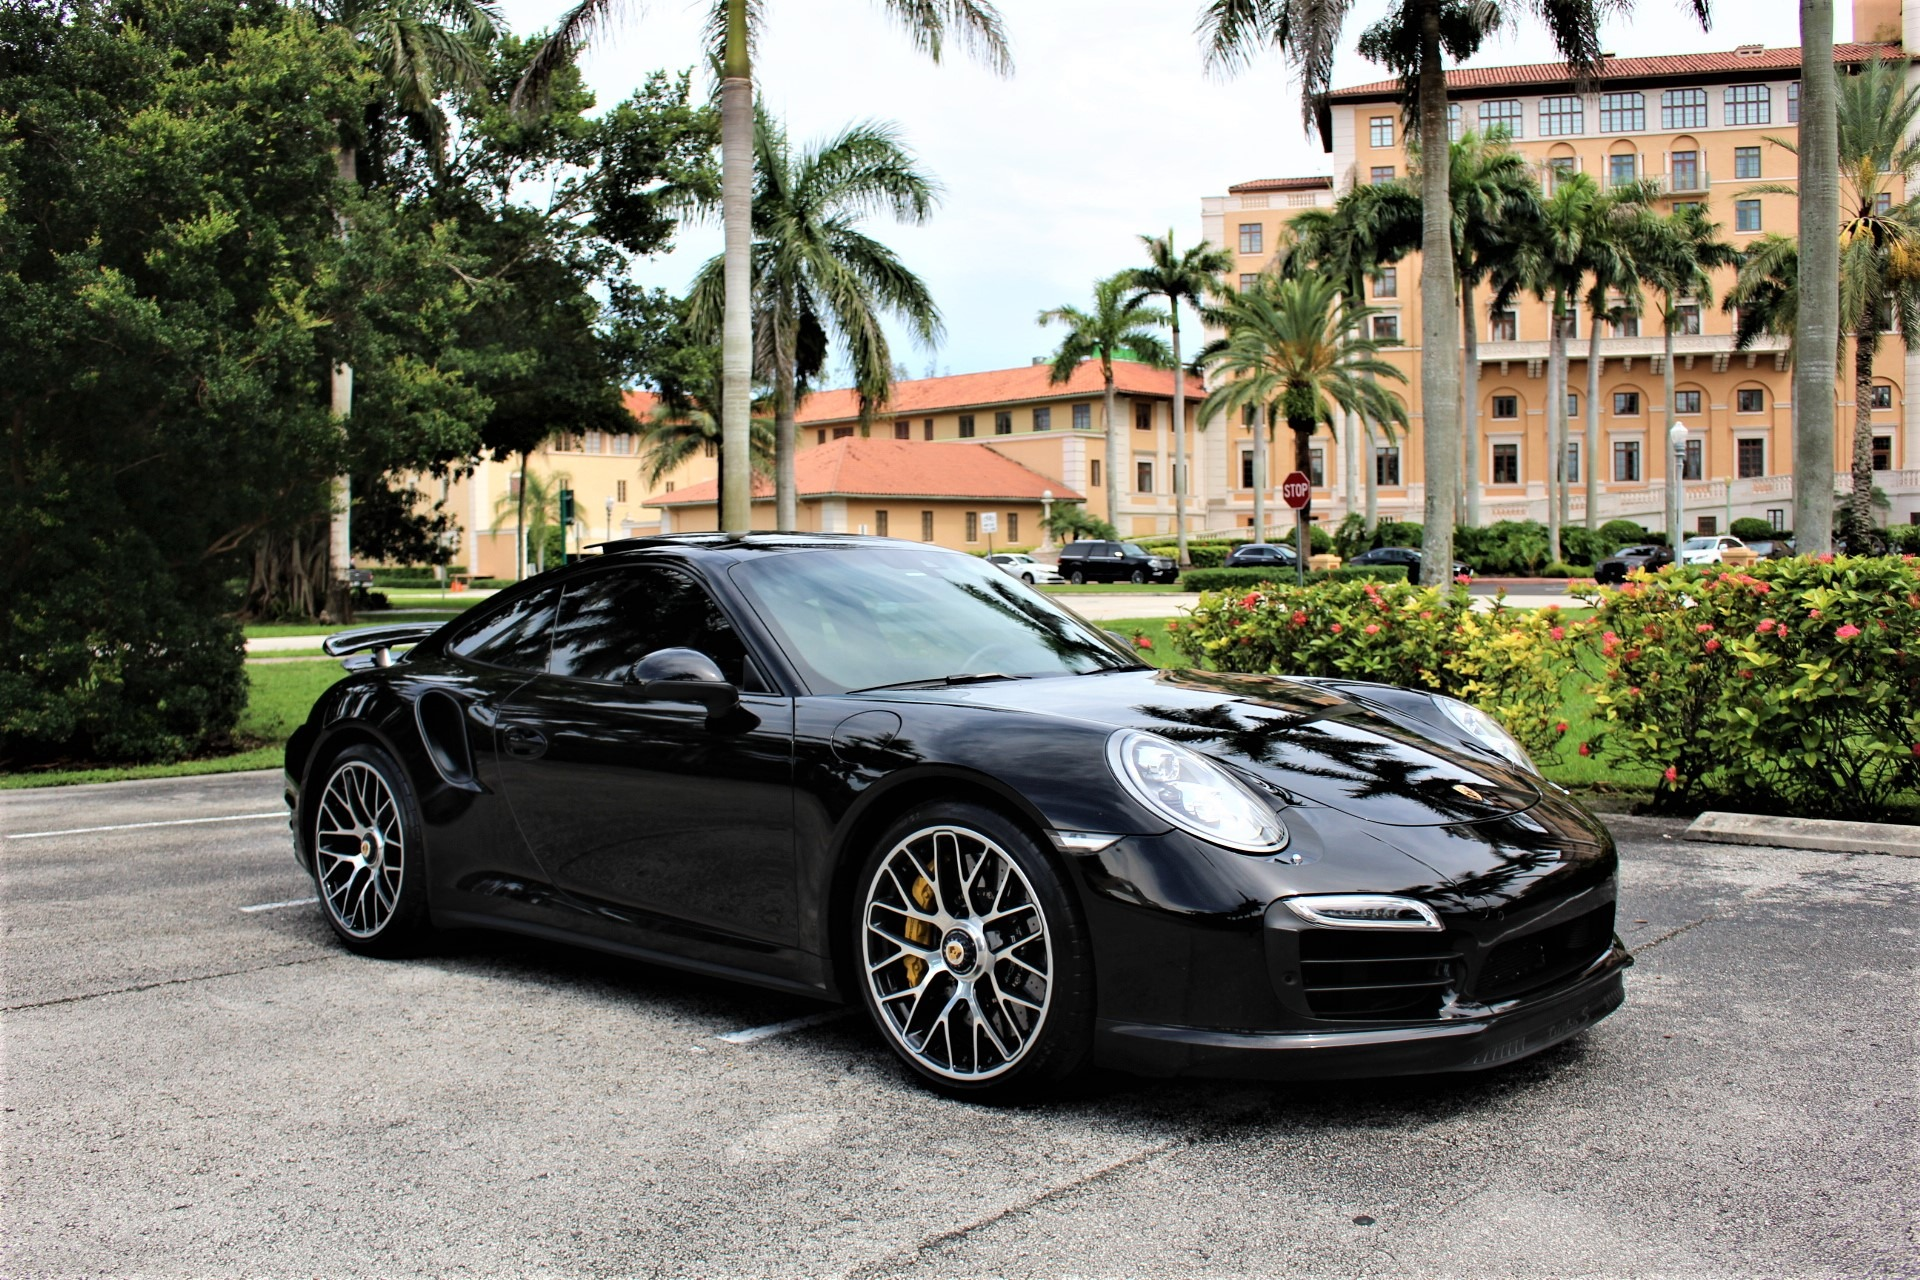 Used 2014 Porsche 911 Turbo S for sale $126,850 at The Gables Sports Cars in Miami FL 33146 3